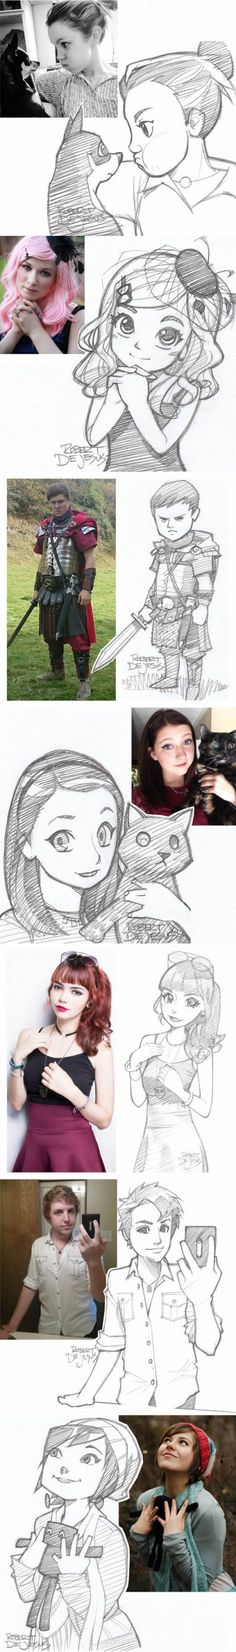 People and their cartoon versions Part 3